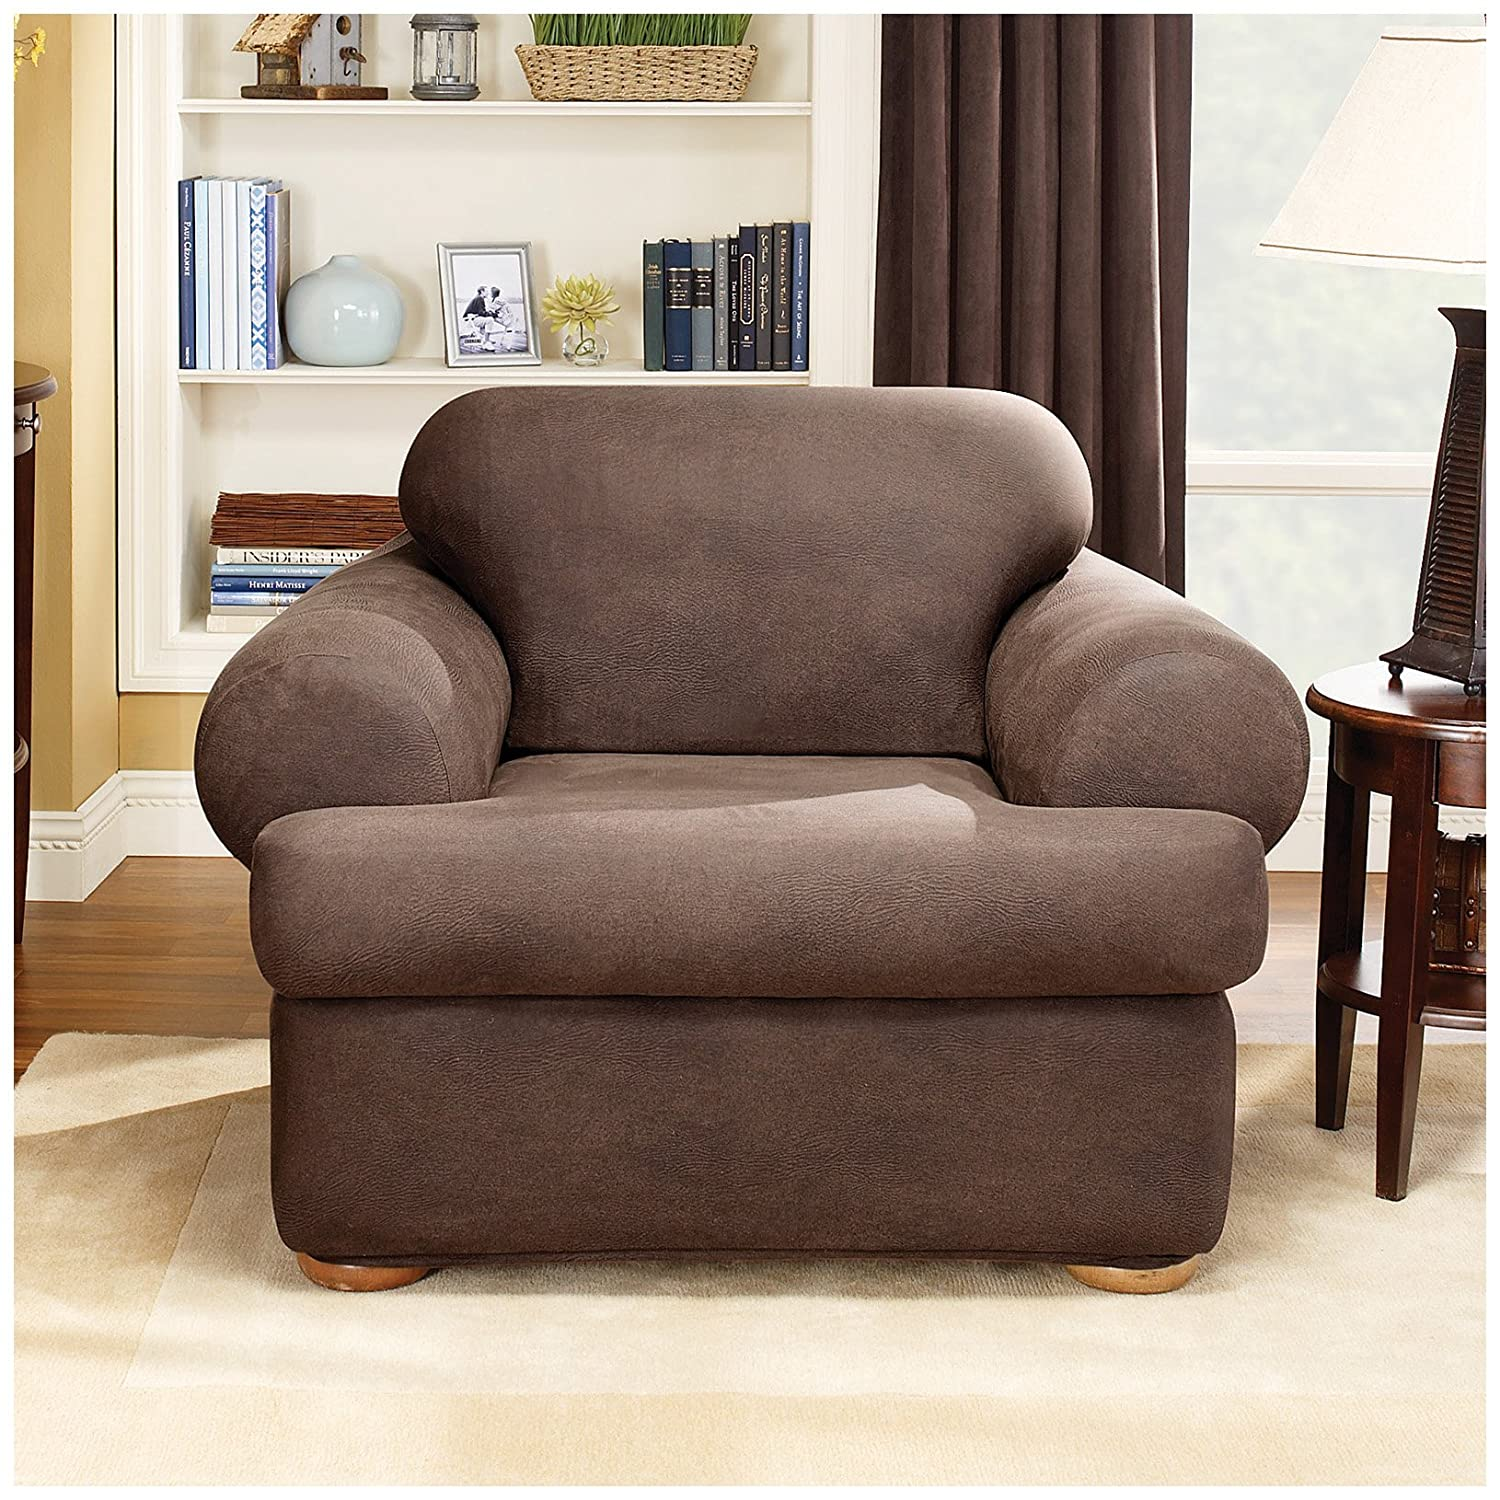 Amazon Sure Fit Stretch Leather 2 Piece Sofa Slipcover